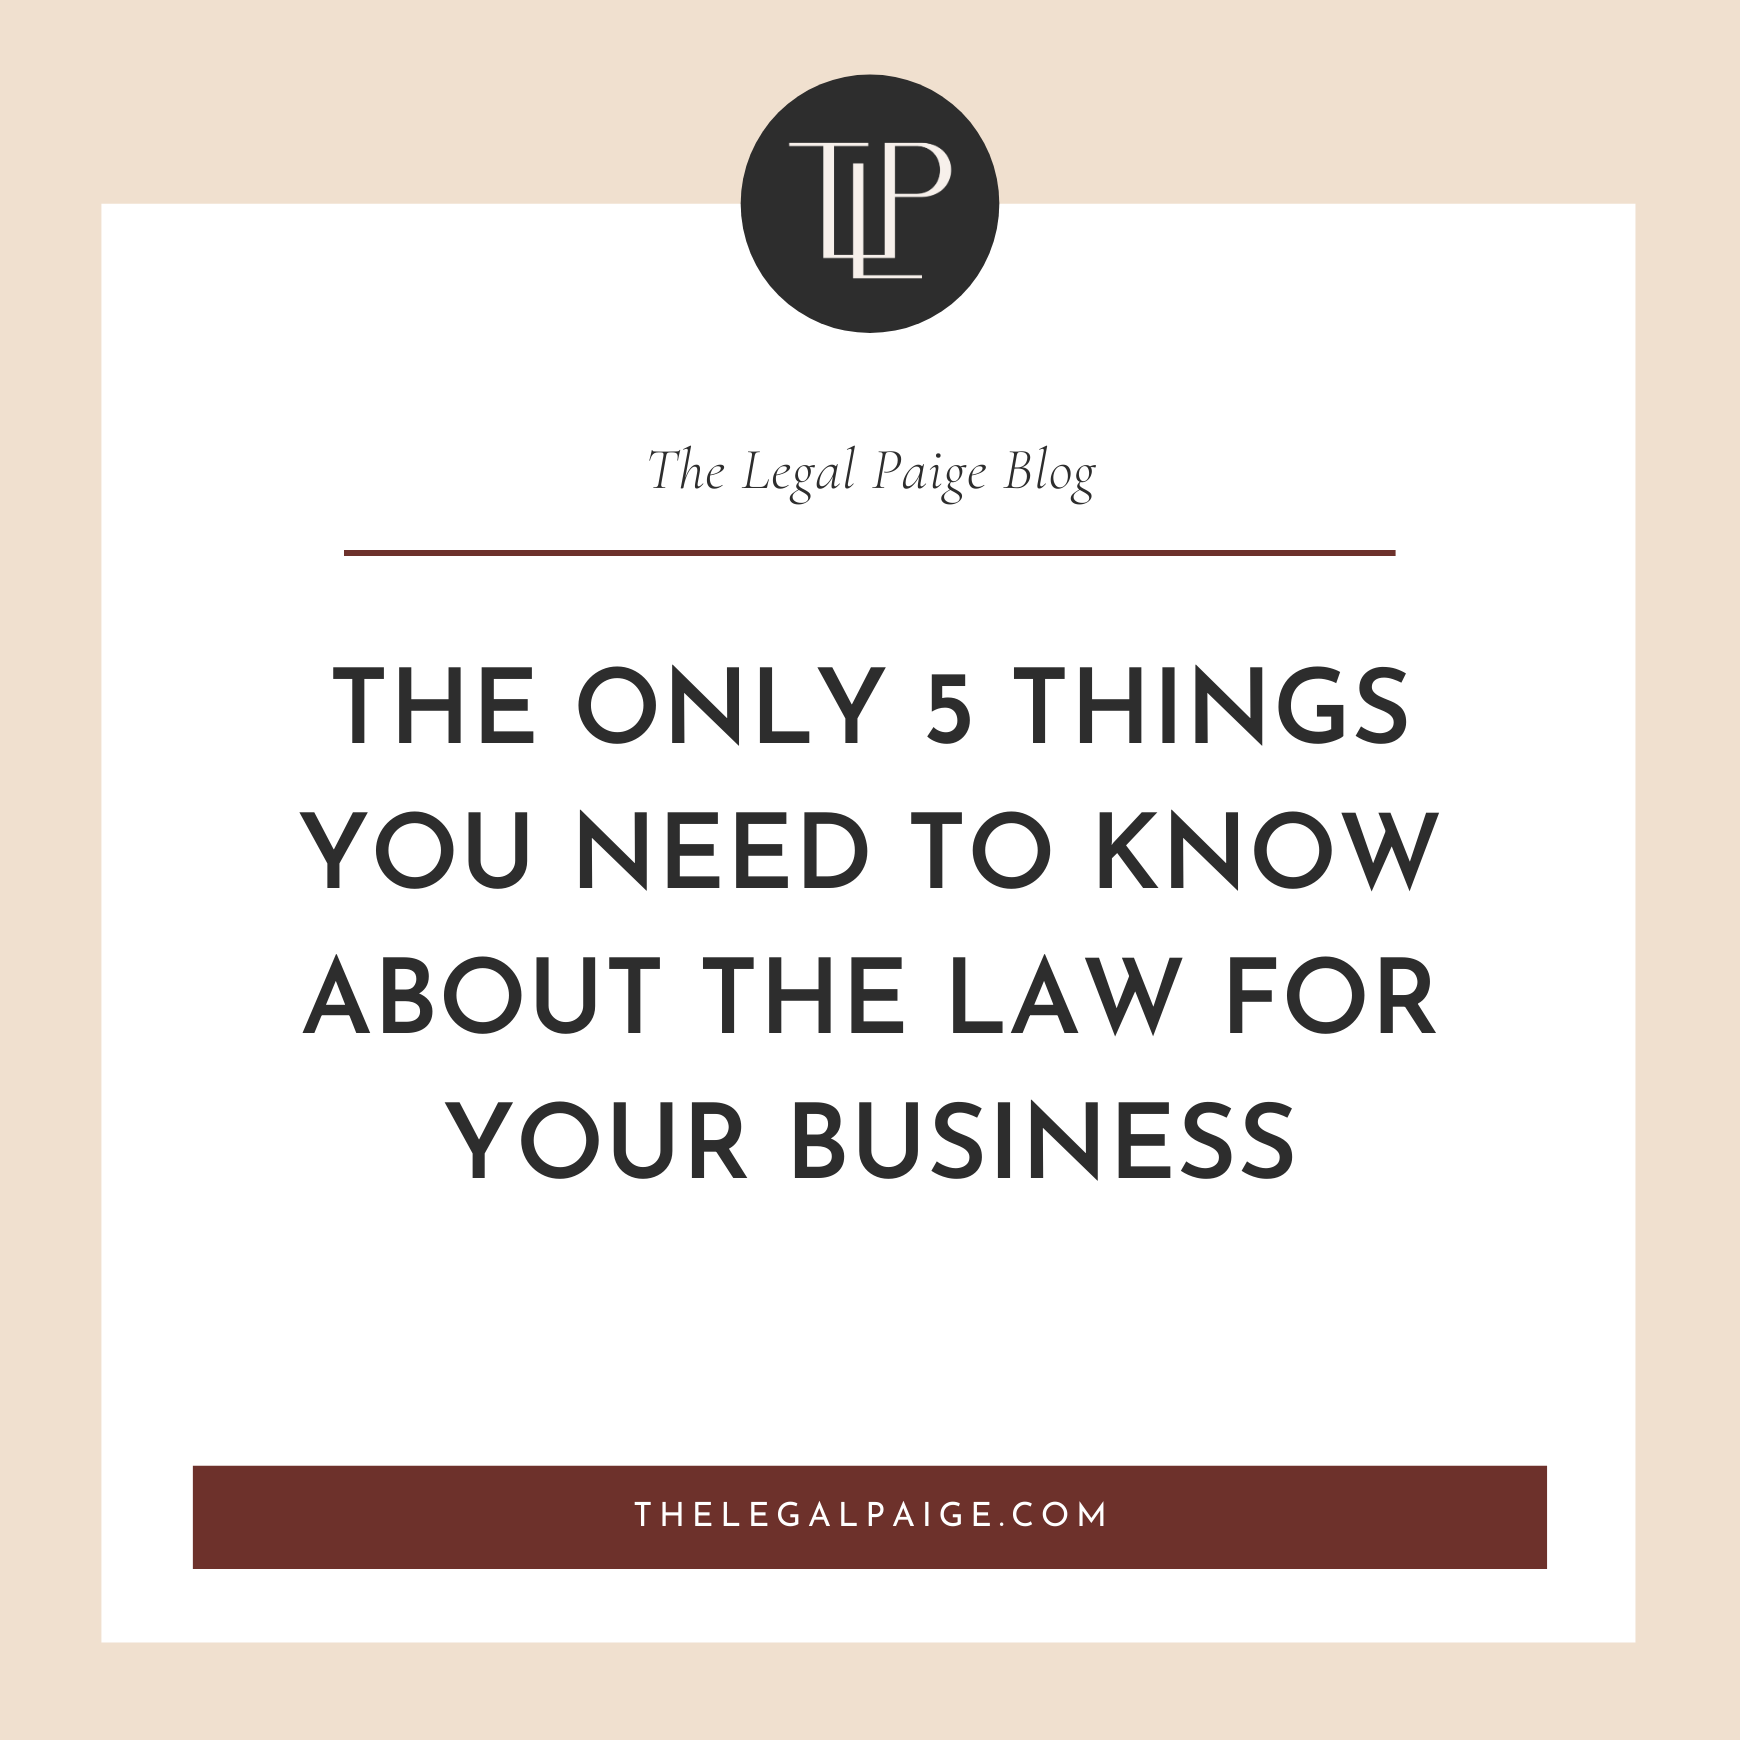 The ONLY 5 things you need to know about the law for your business